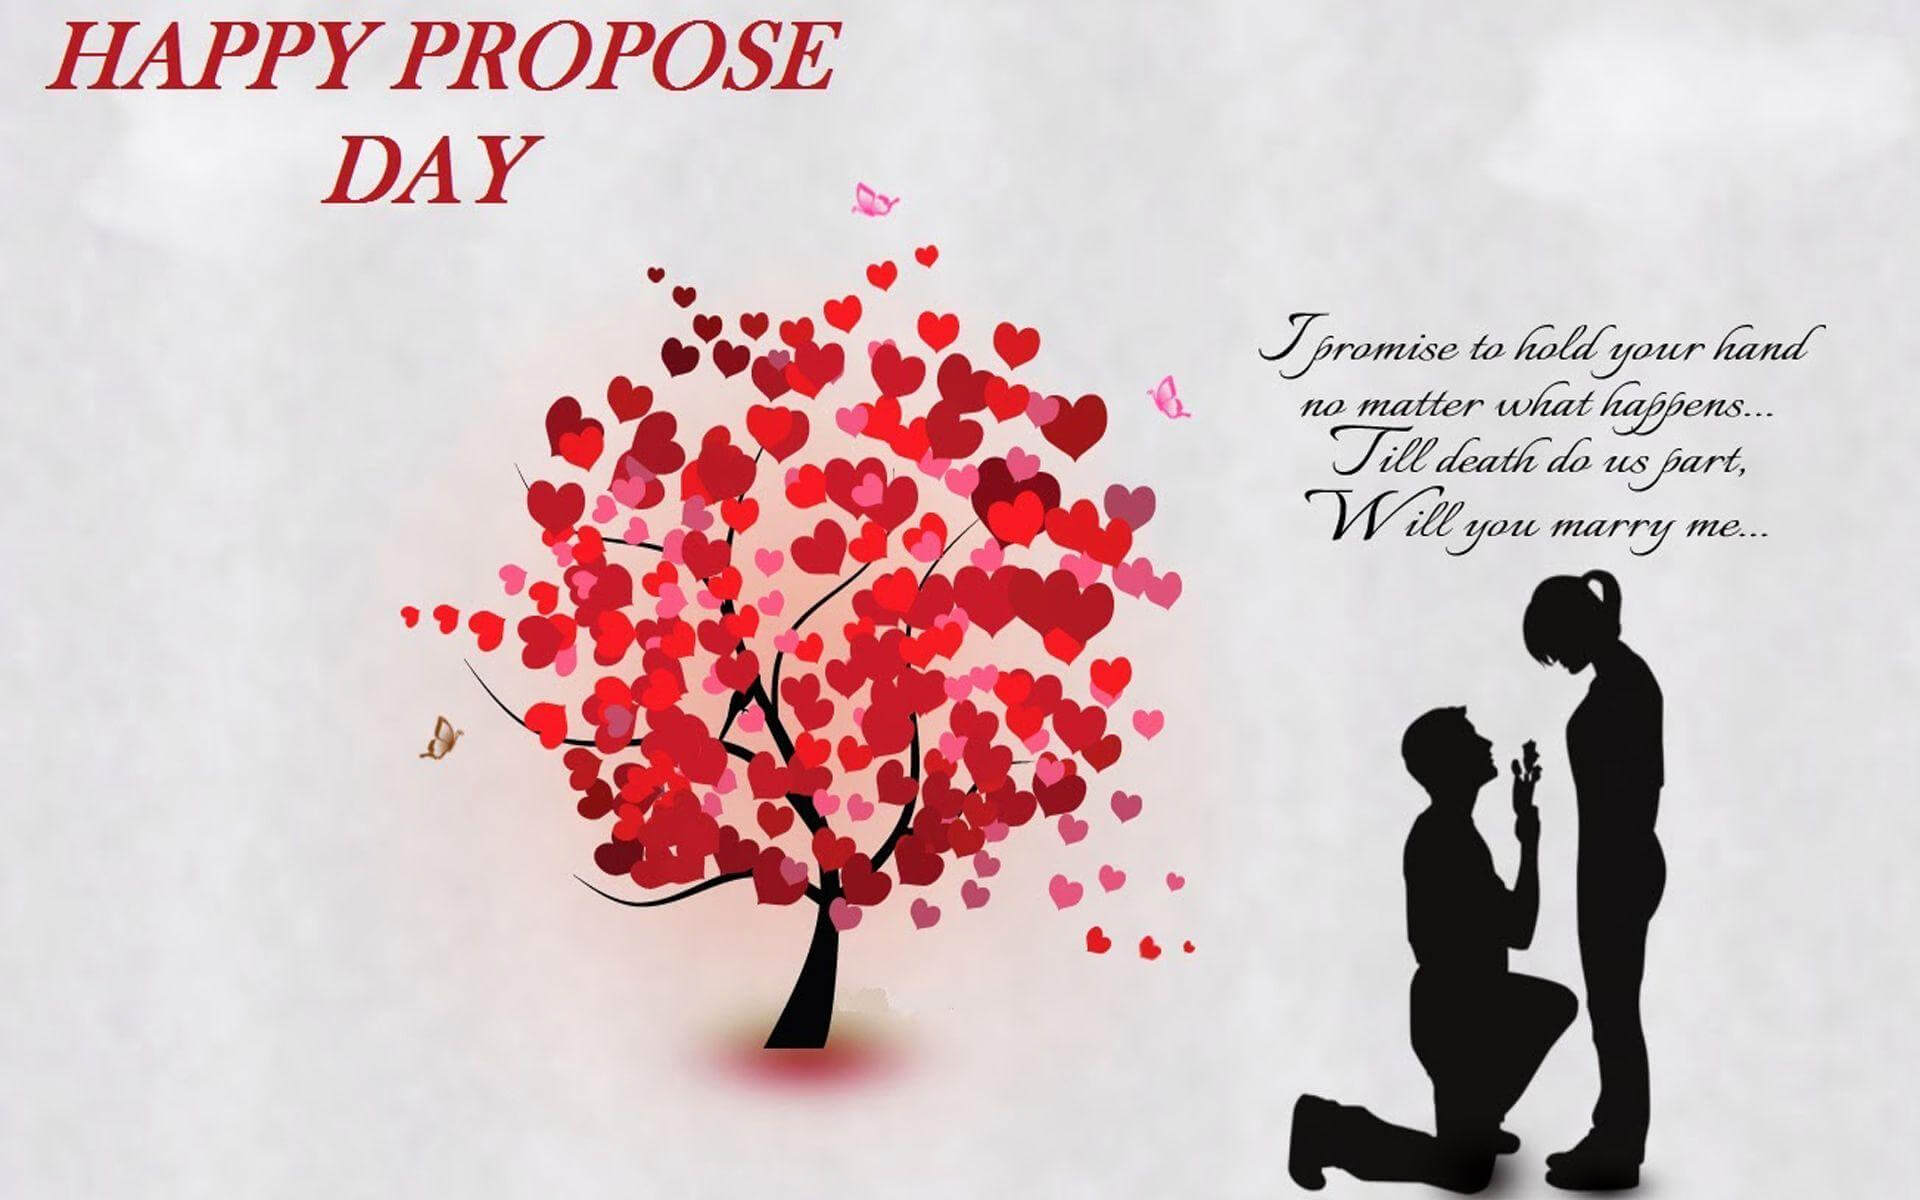 happy propose day love tree hearts quotes couples february 8th hd wallpaper